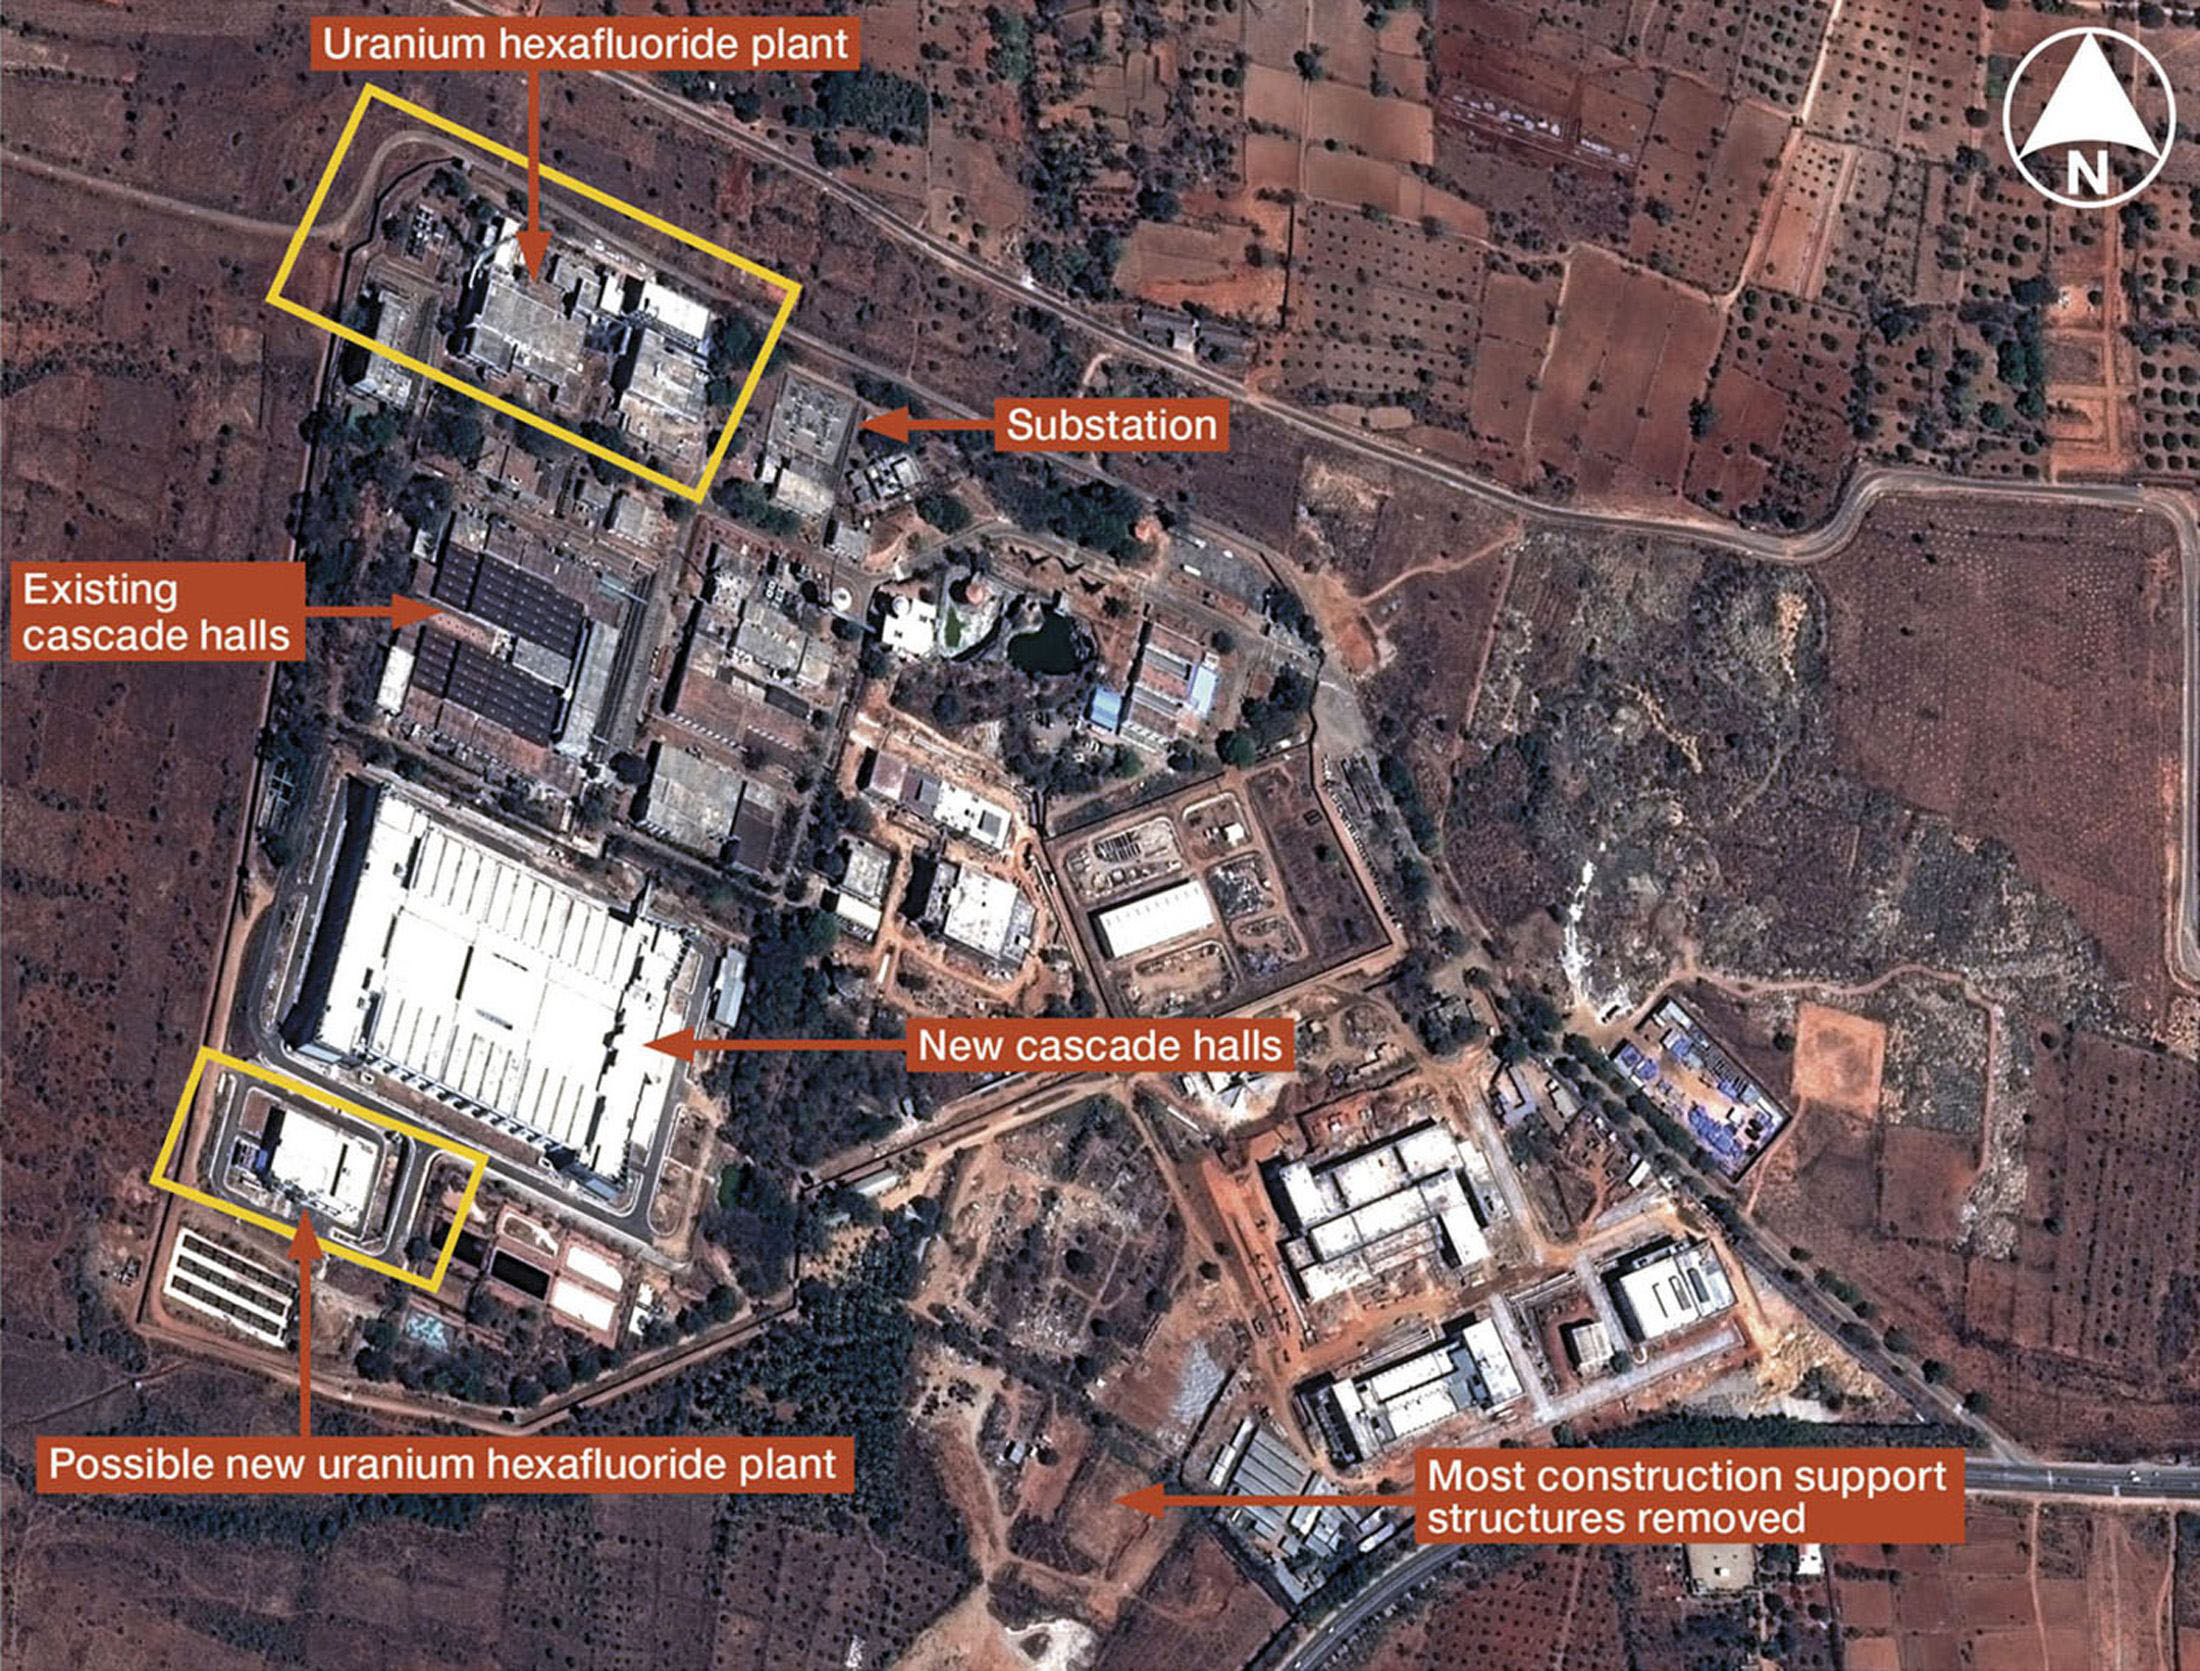 This satellite image provided by the defense research group IHS Jane's shows the Indian Rare Metals Plant near Mysore in the southern Indian state of Karnataka on June 16.   REUTERS